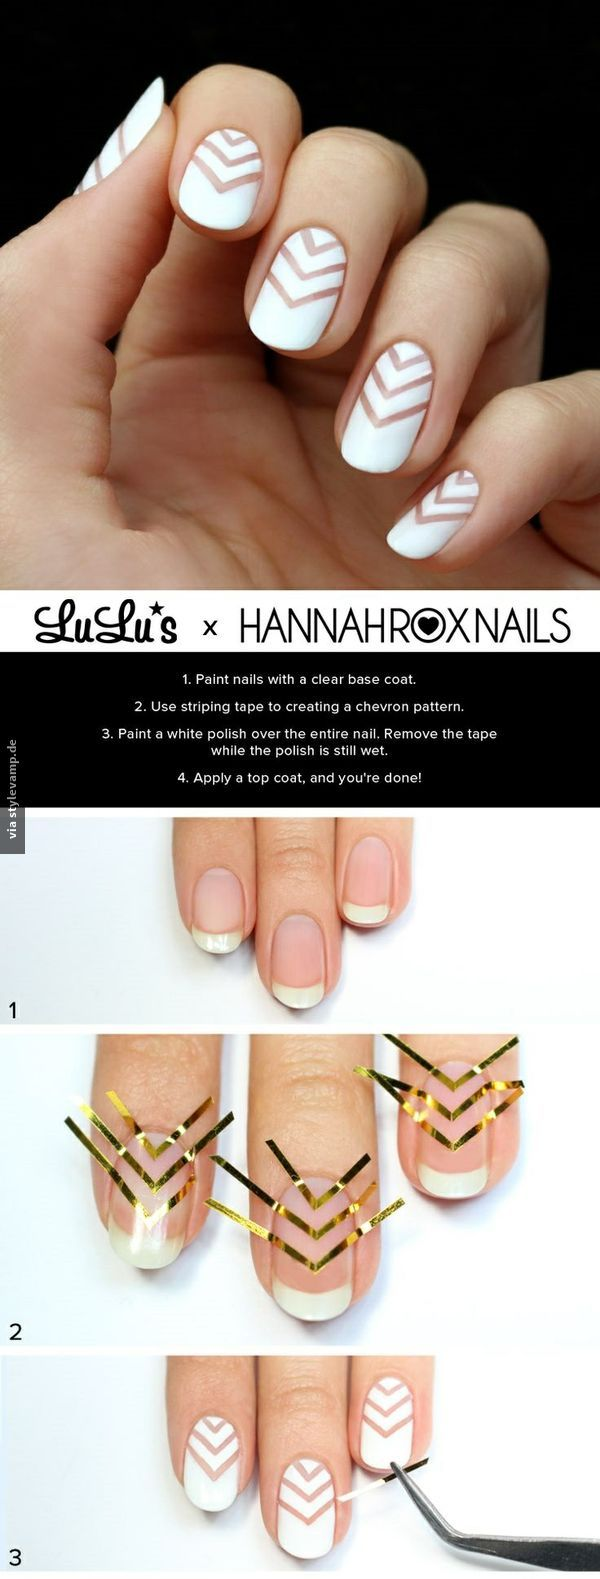 100 best nailart images on Pinterest | Christmas nails, Cute nails ...